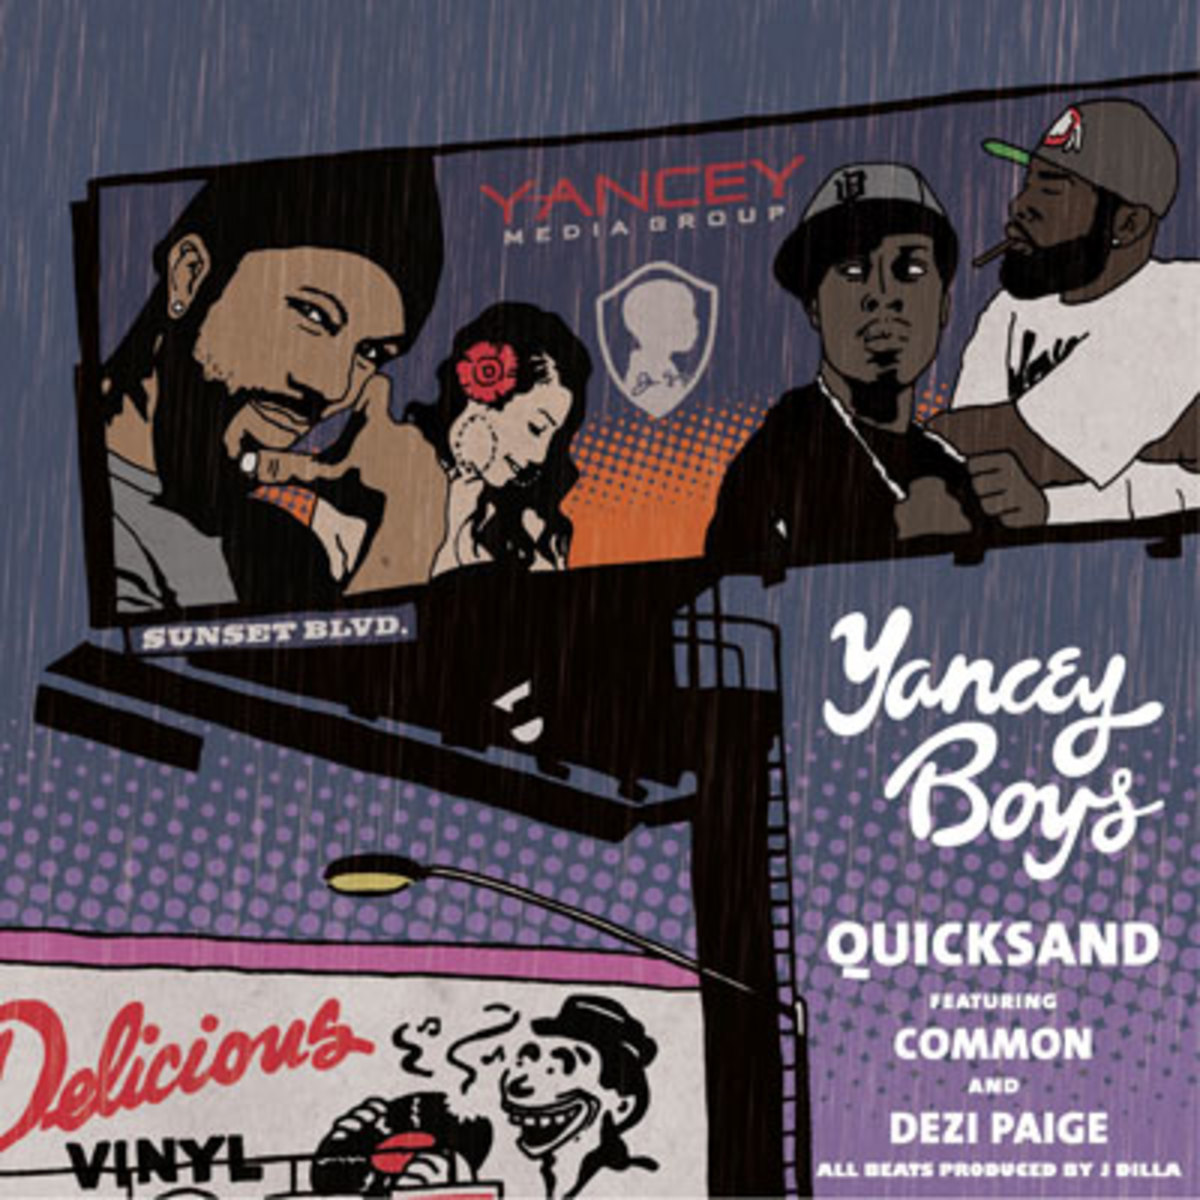 yanceyboys-quicksand.jpg